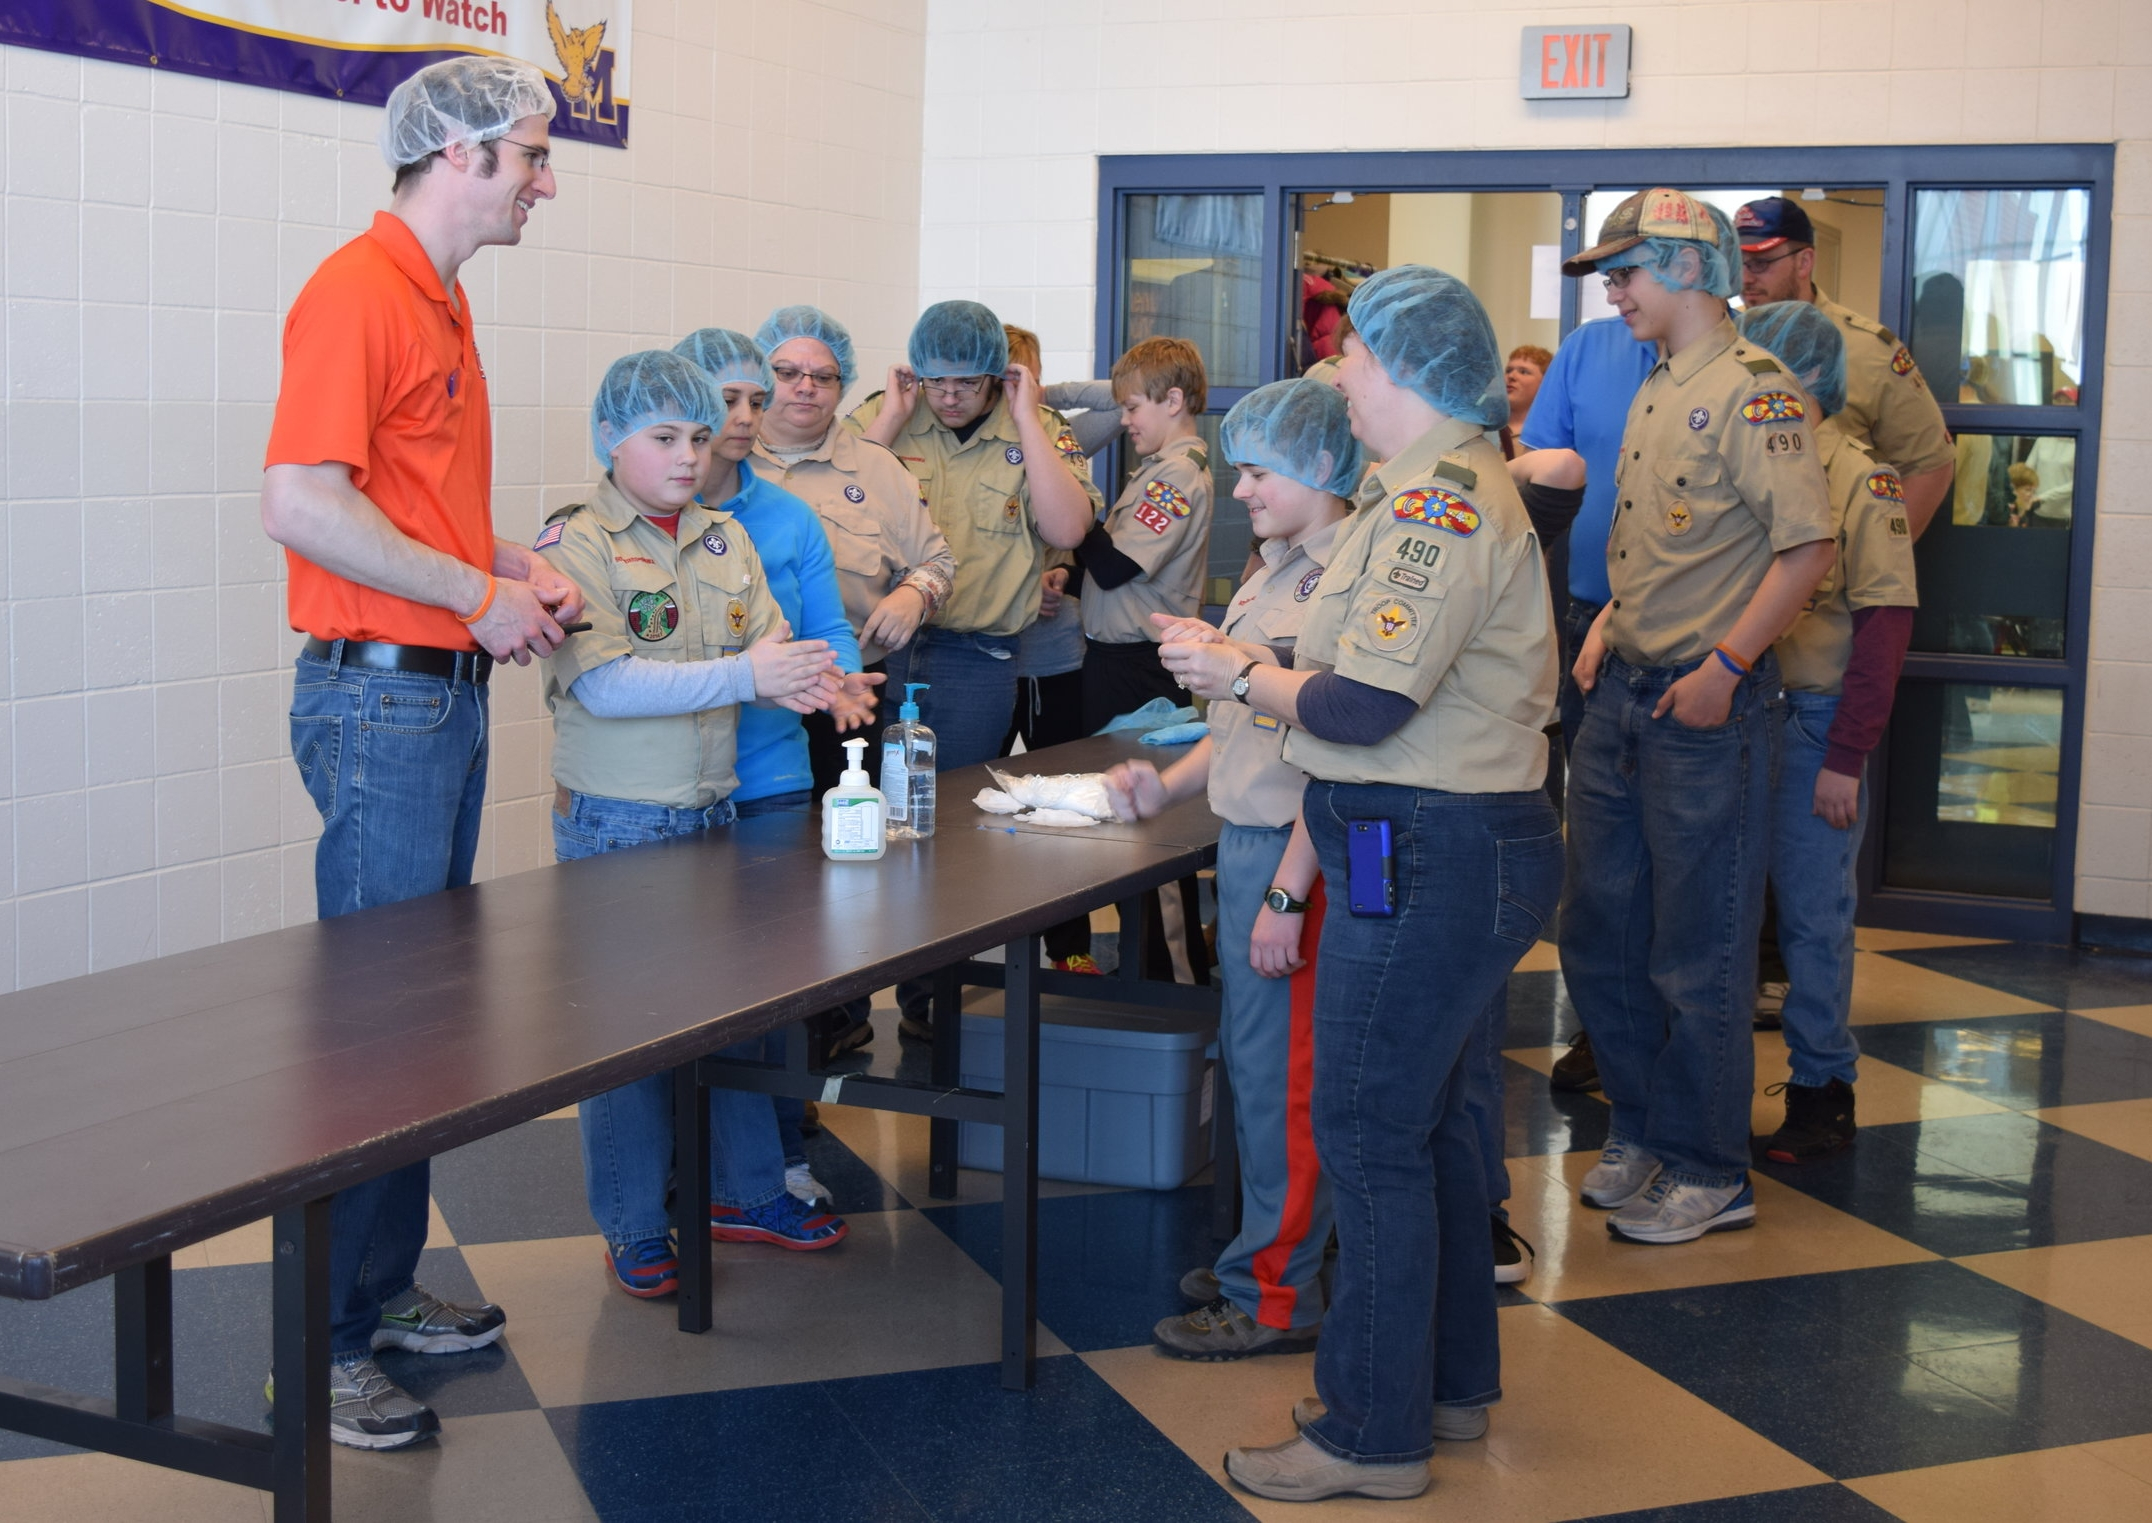 A student leader from Illini Fighting Hunger leads a boy scout troop as they prepare to package meals in Monticello, IL.